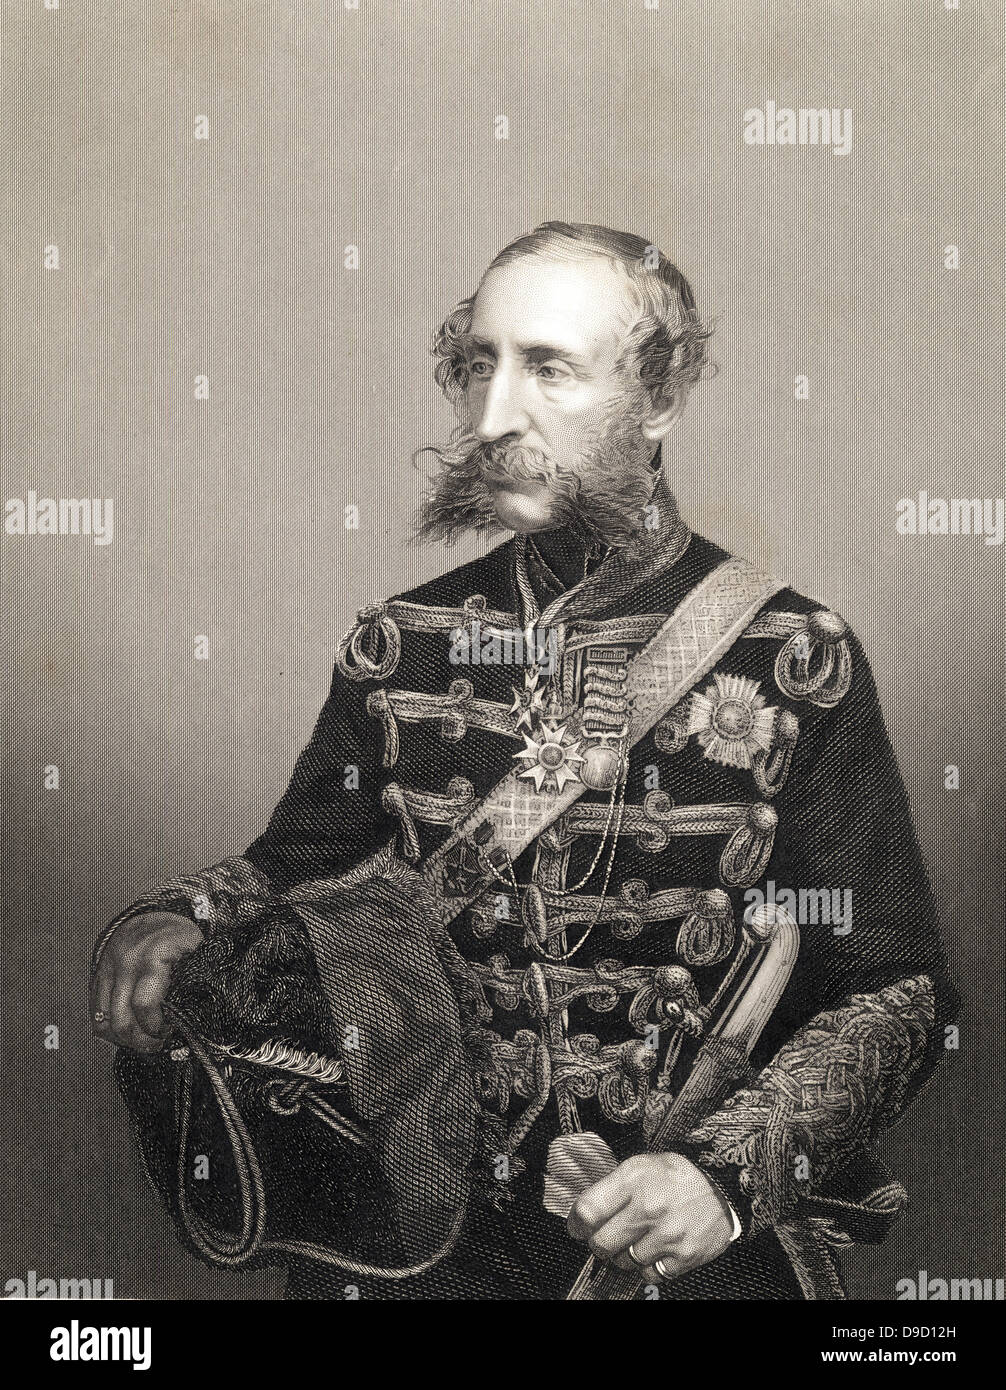 Lieut-General James Brudenell, 7th Earl of Cardigan (1797-1868), British Army cavalry officer. Led the Charge of - Stock Image